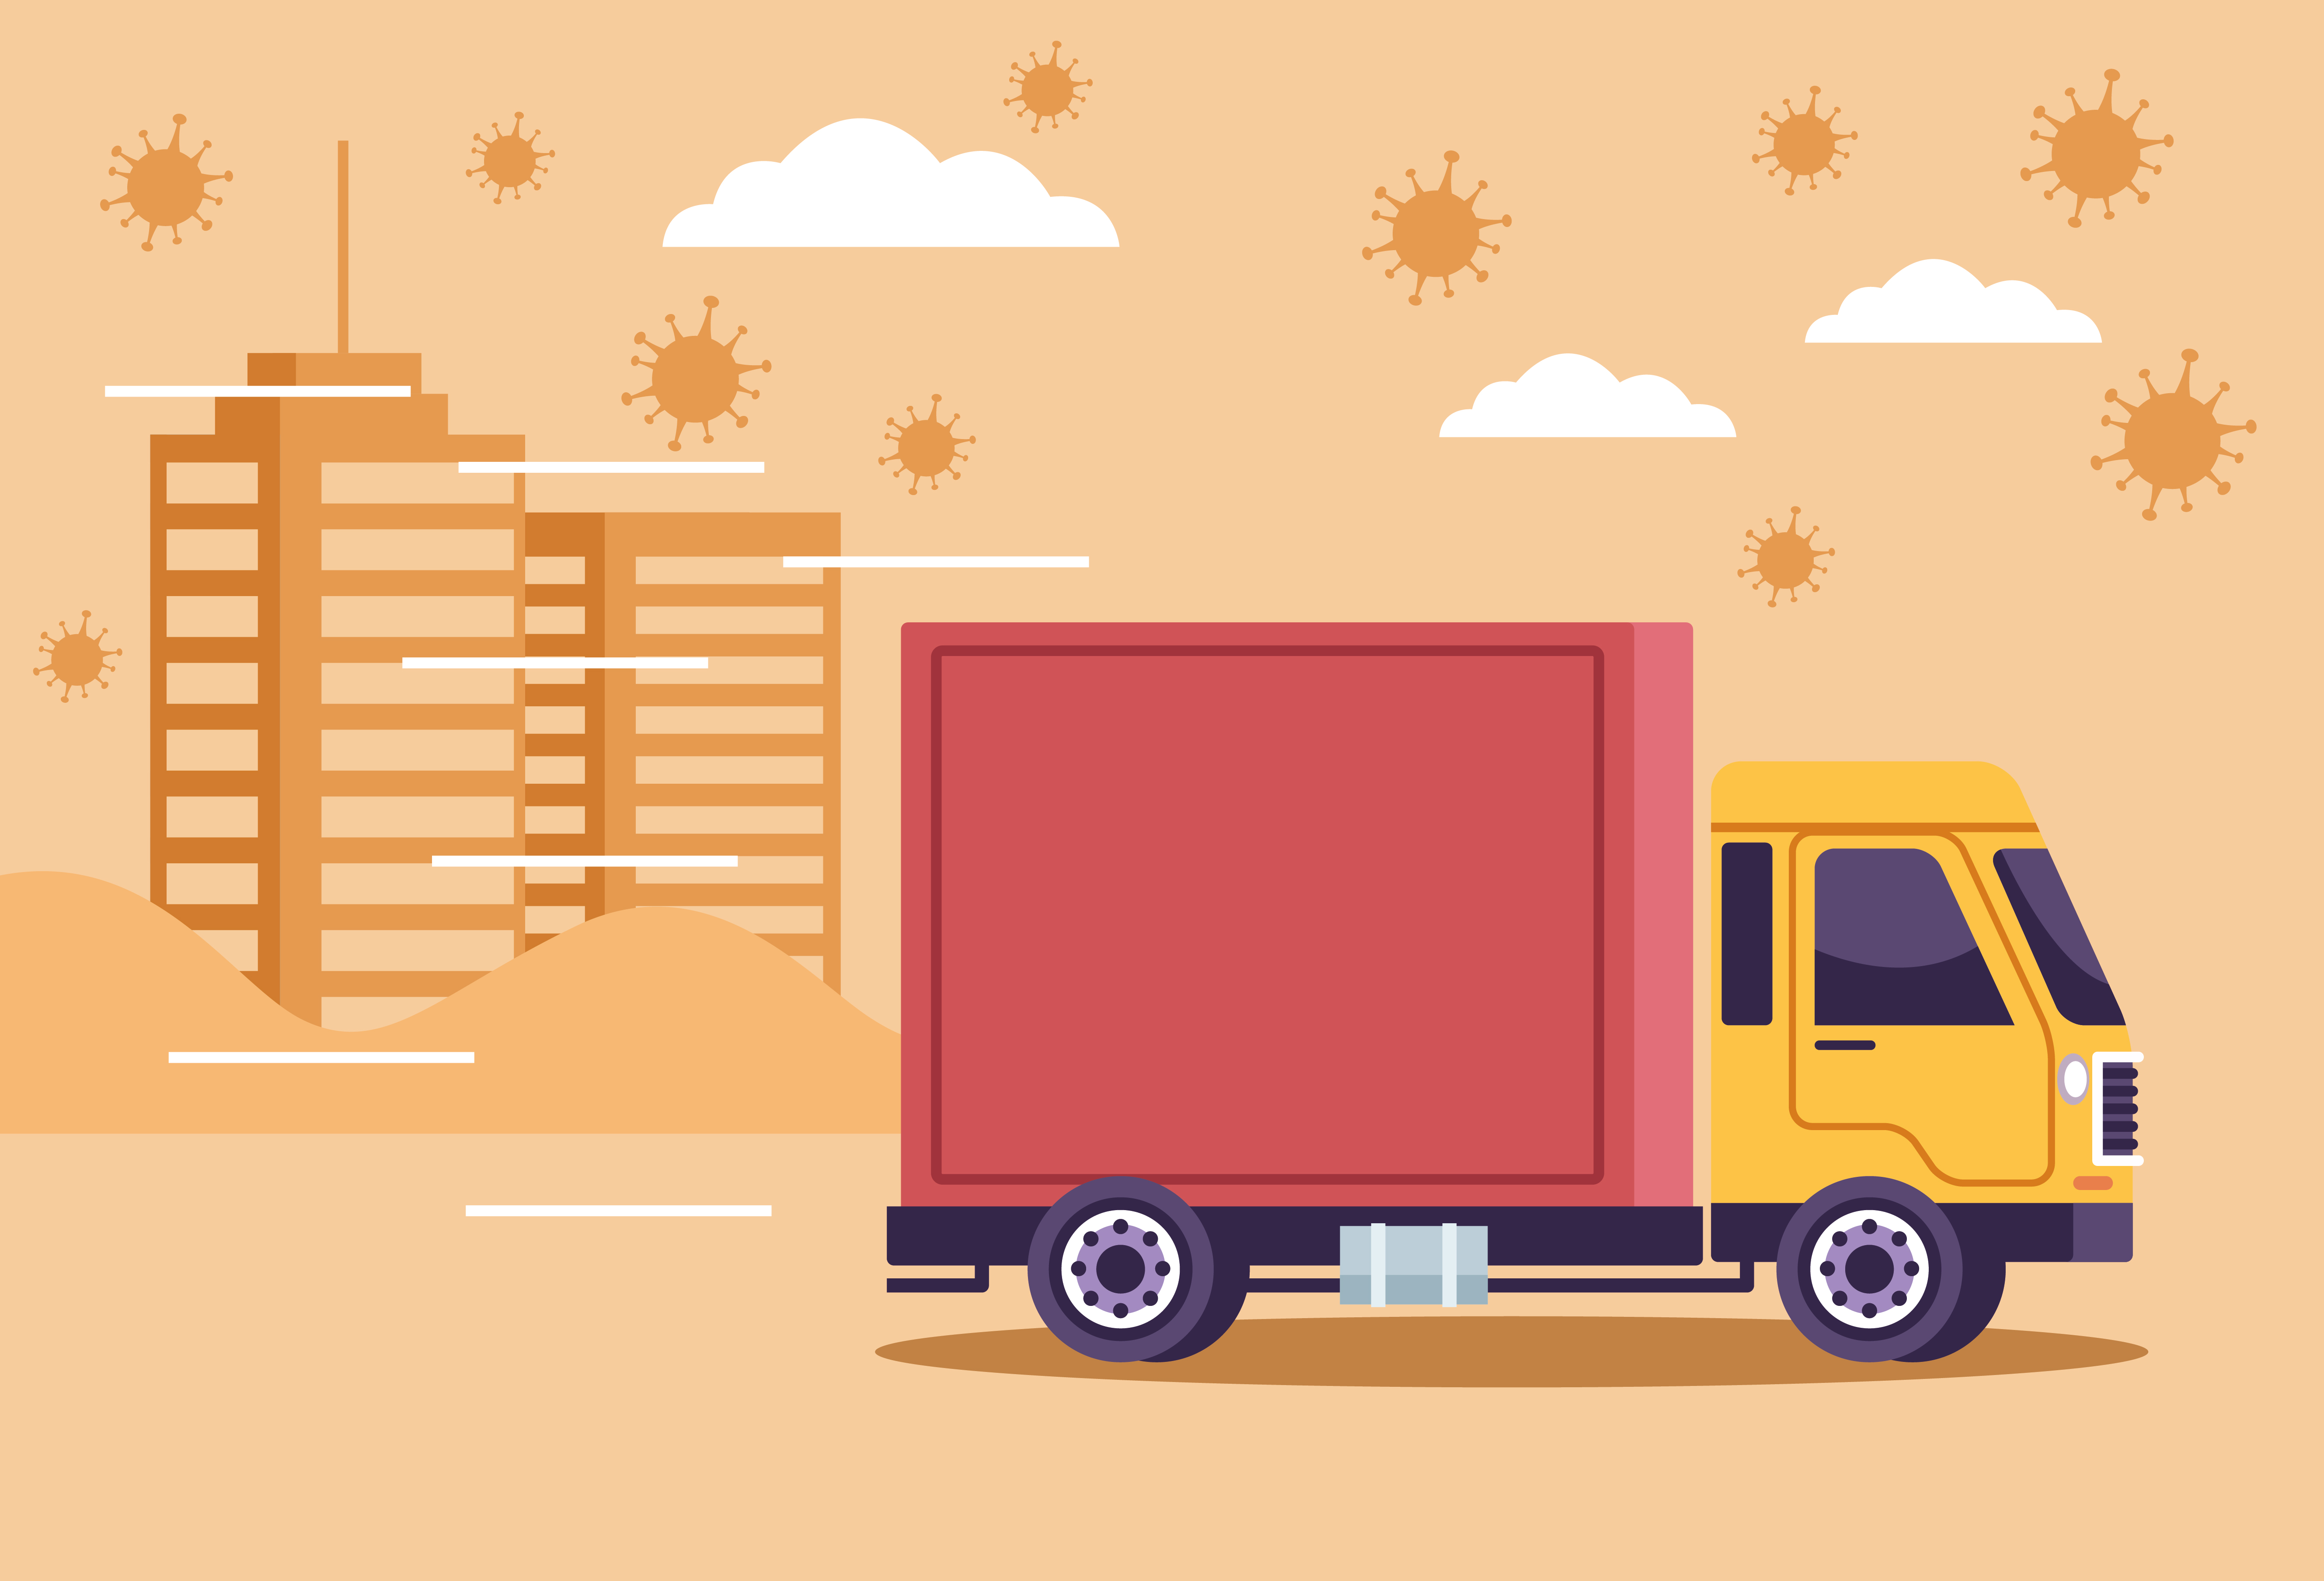 Truck delivery with COVID 19 viruses